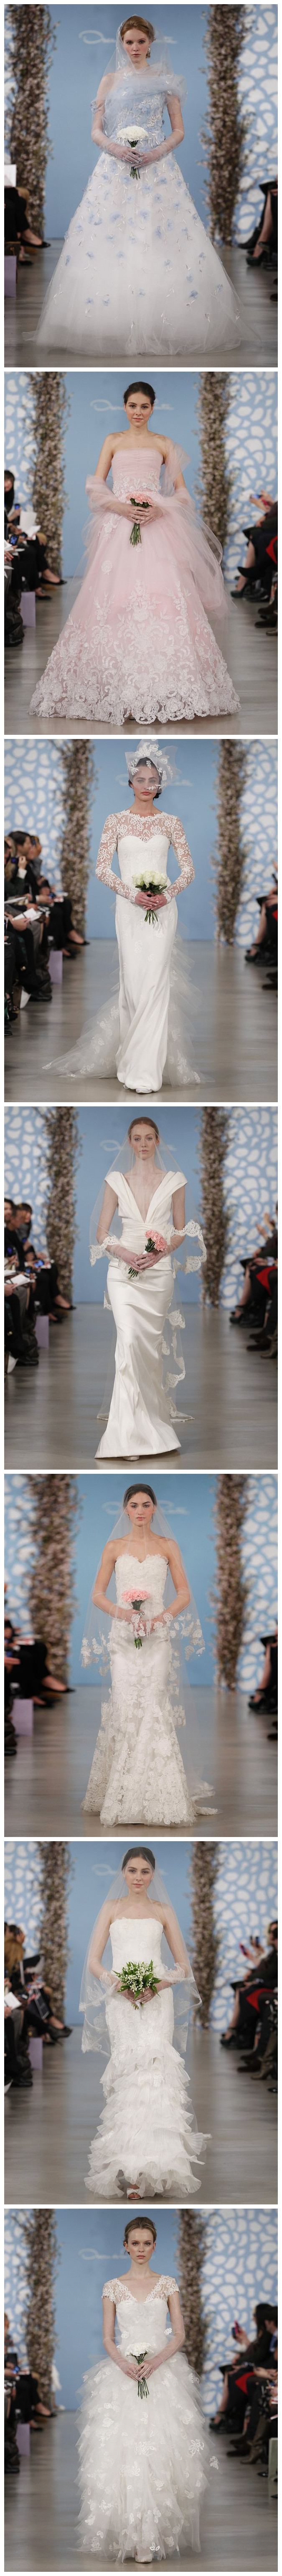 Bridal Collection Spring 2014 de Oscar de la Renda